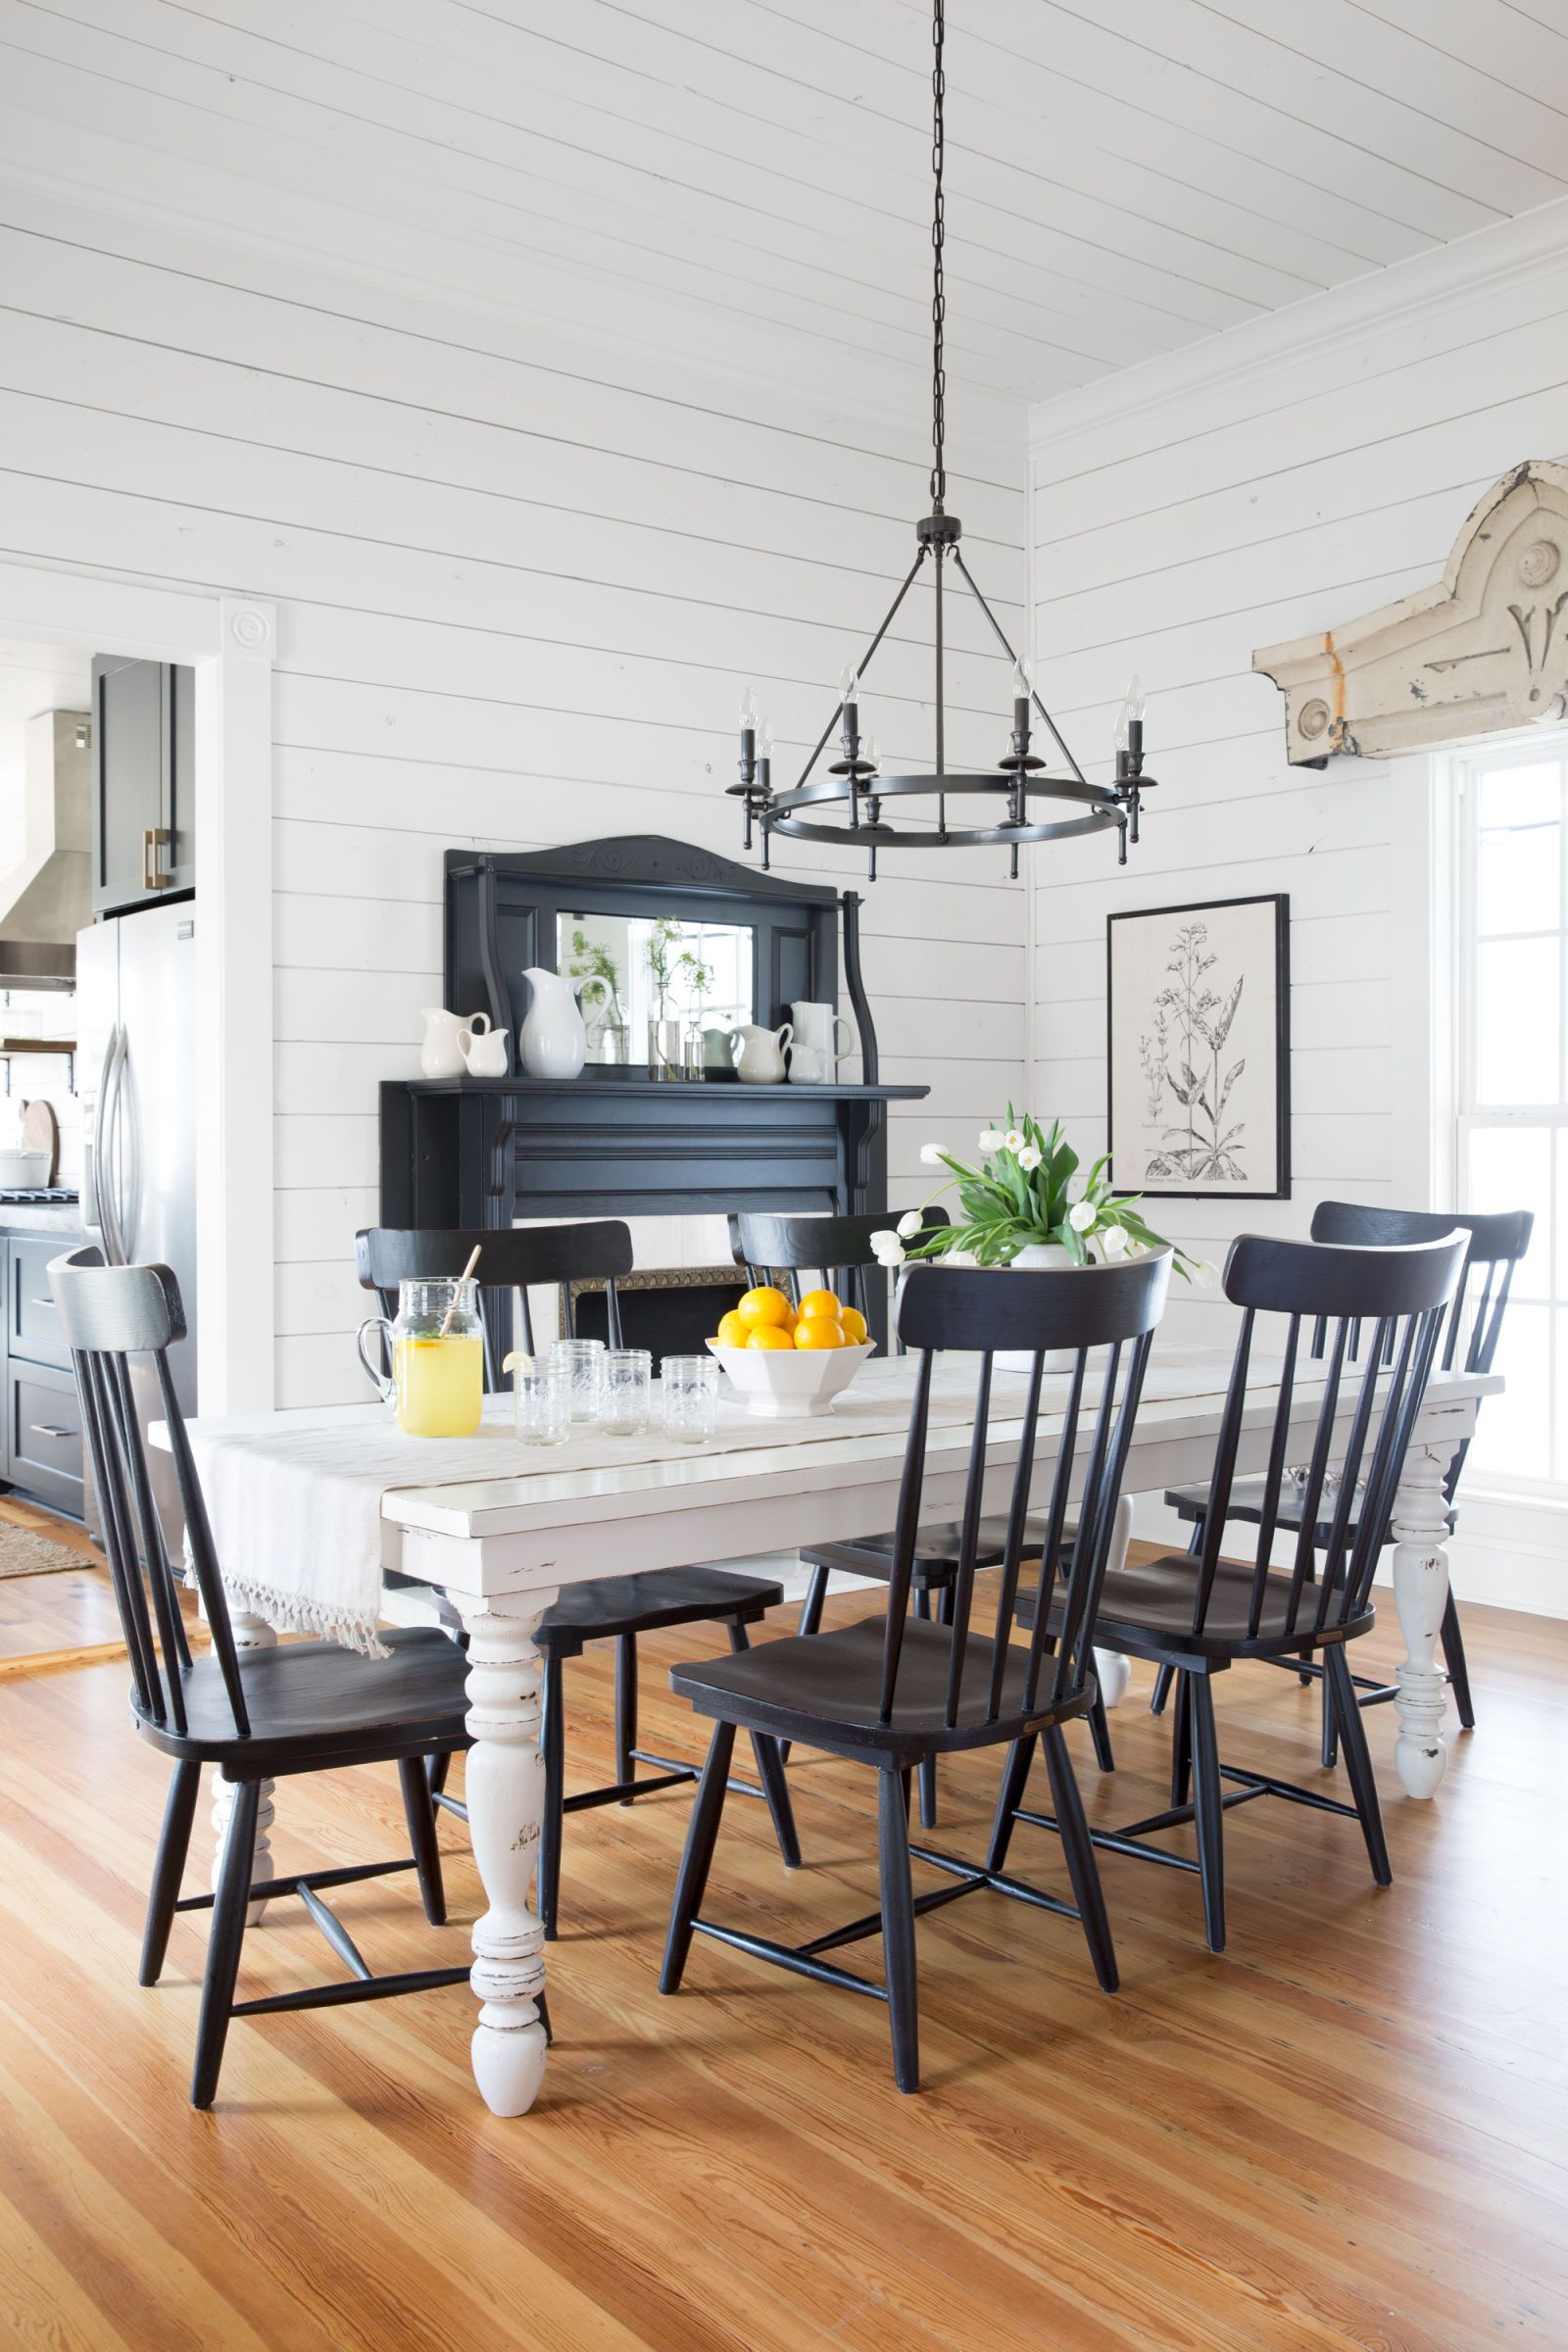 take a tour of chip and joanna gaines' magnolia house b&b | country